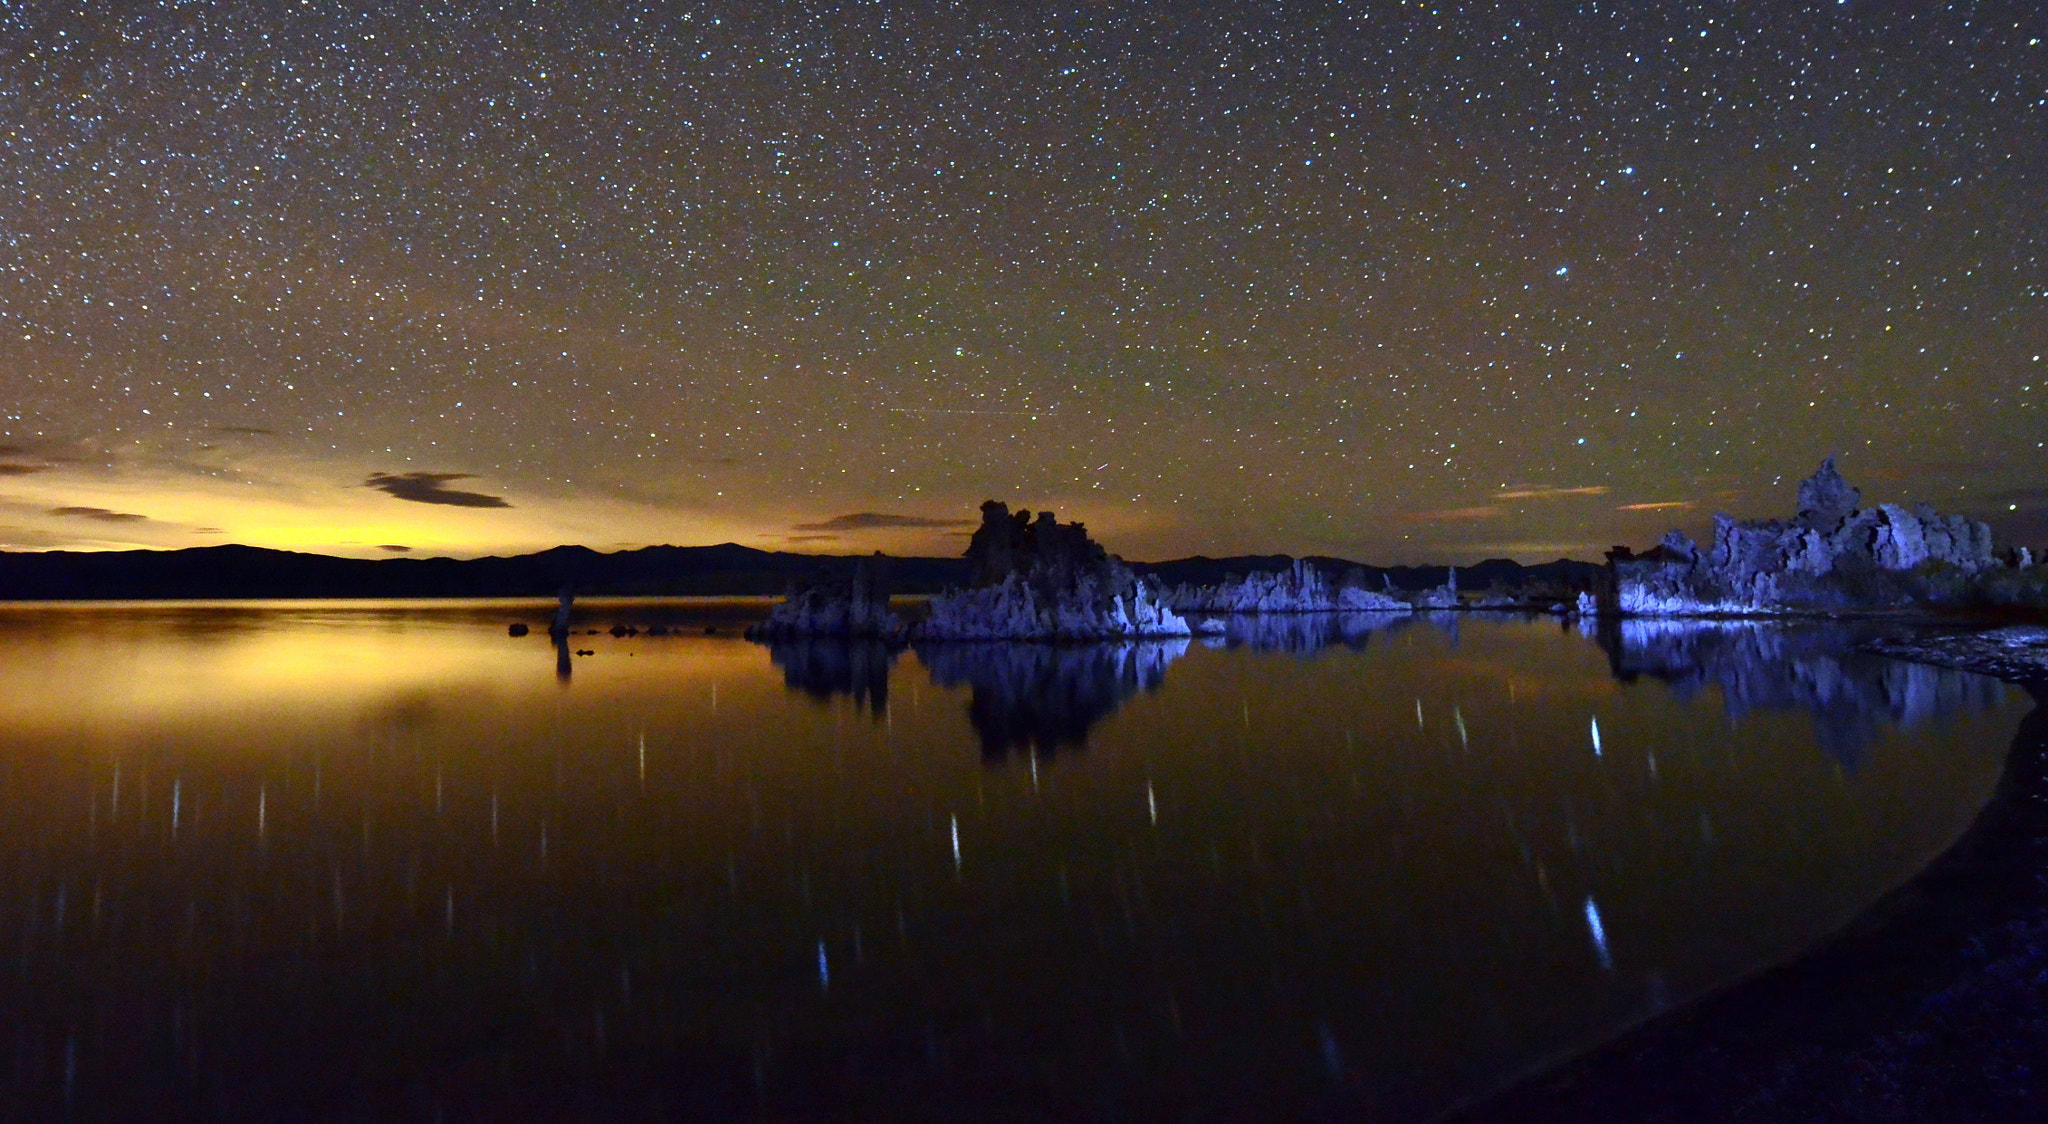 Photograph Mono Lake Star Reflections by Shreenivasan Manievannan on 500px